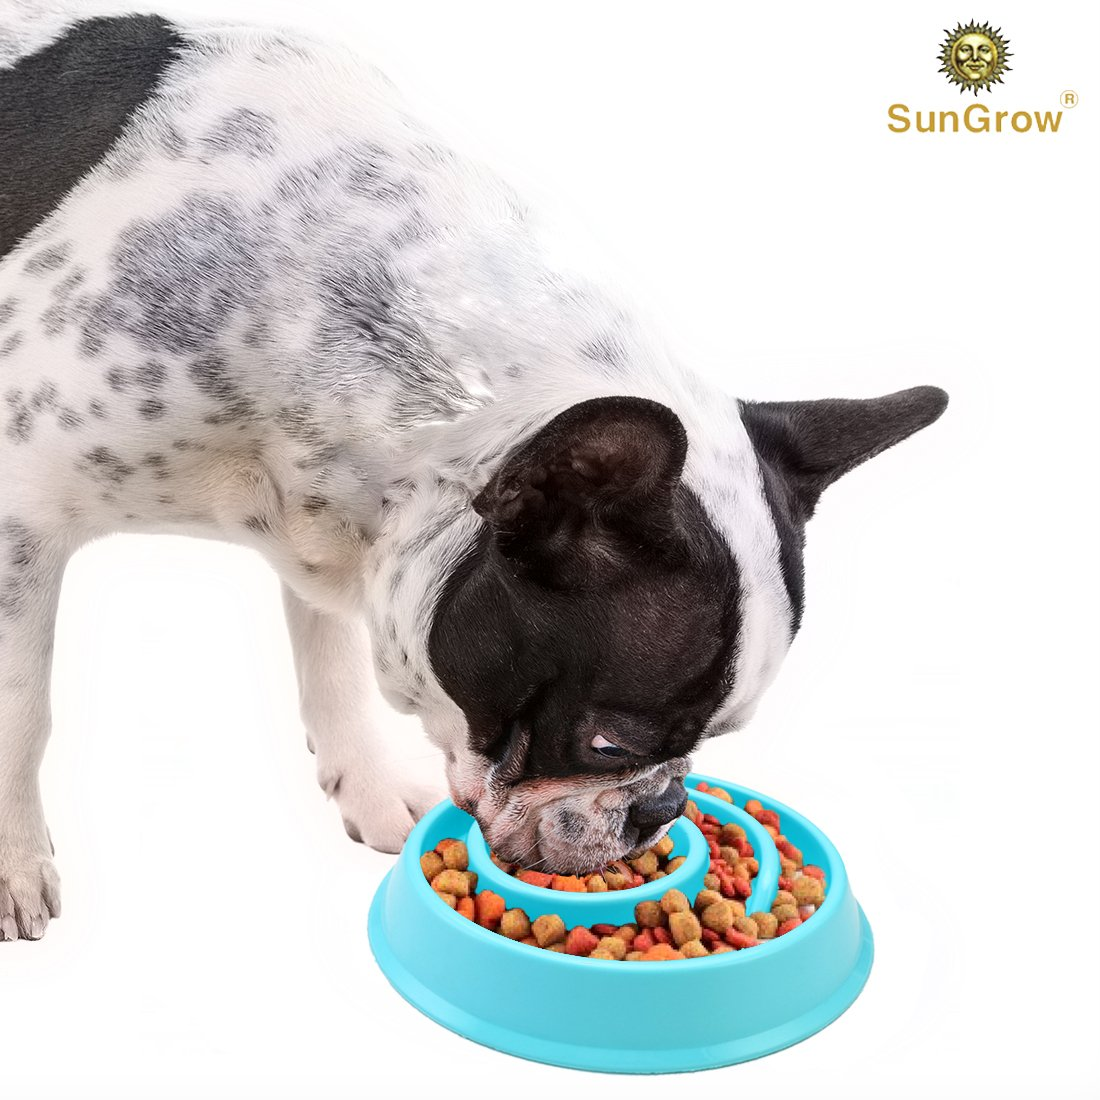 Slow Dog Feed Bowl by SunGrow -- Prevents canine obesity - Free from BPA, PVC and phthalate toxic materials - Promotes fun, interactive, slow eating - Light blue color curbs appetite, boosts health